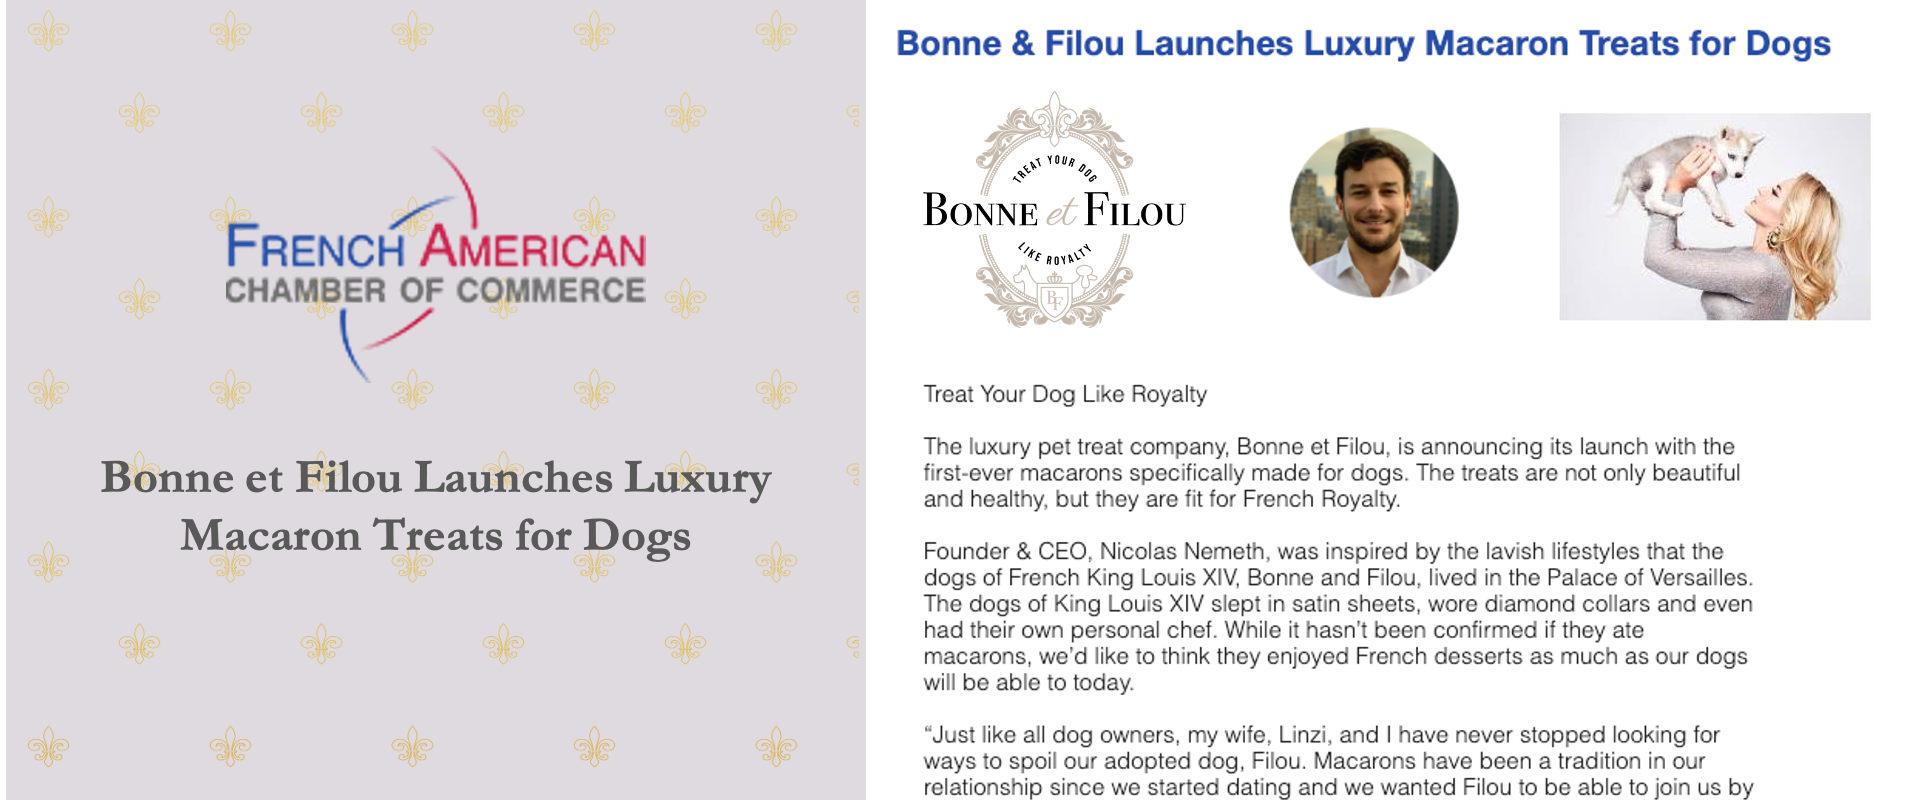 FACC French American Chamber of Commerce Bonne et Filou Launches Luxury Macaron Treats for Dogs